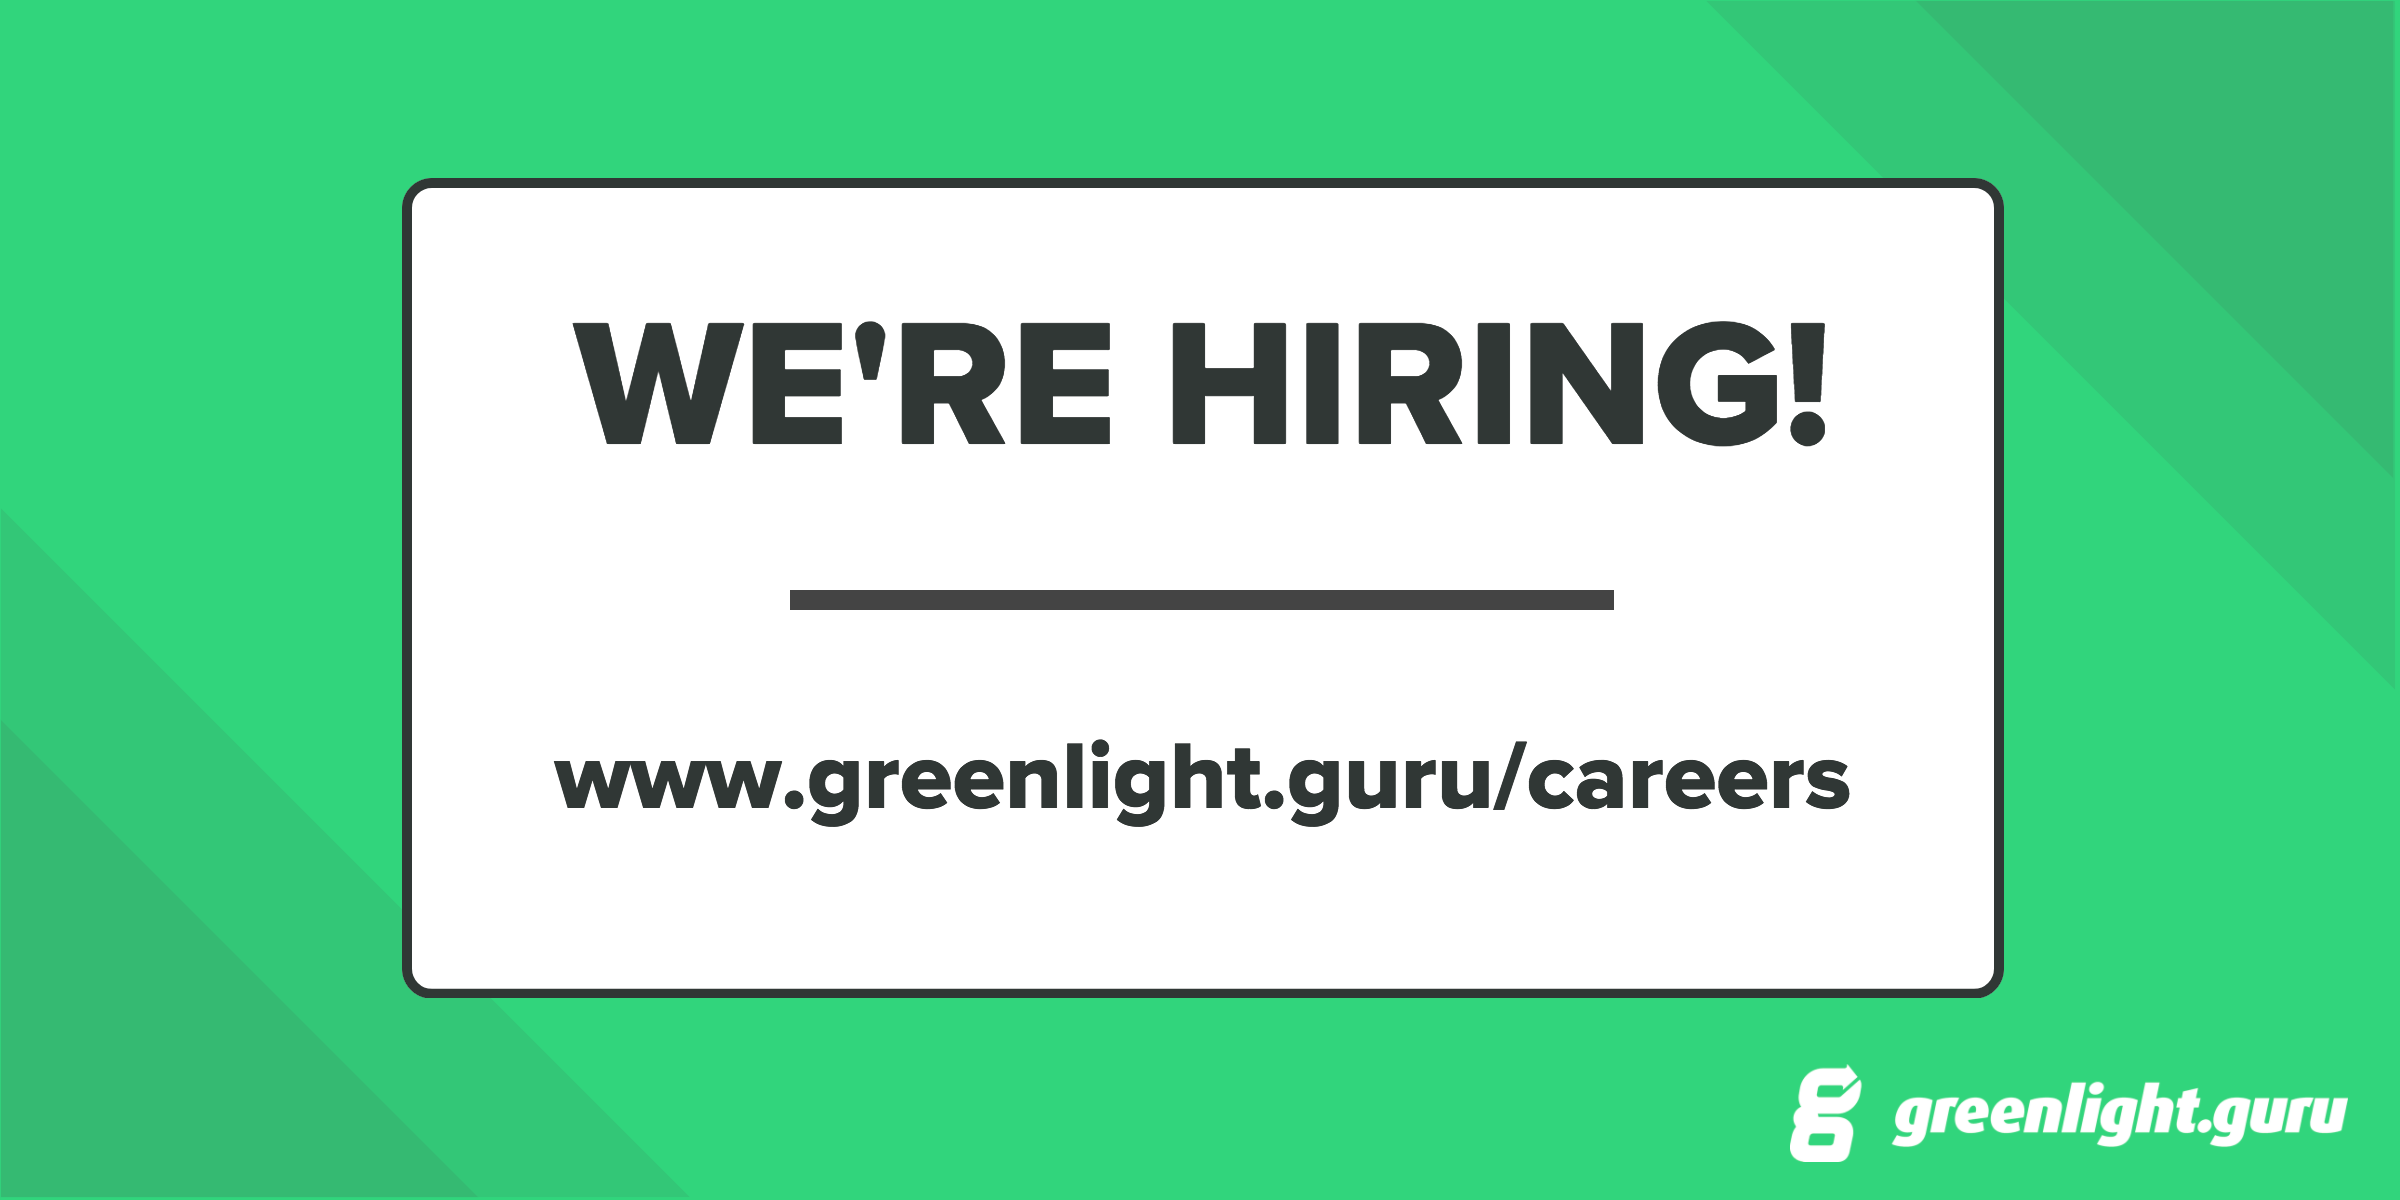 Looking to join a fun, fast growing SaaS company? Greenlight Guru is hiring (Again)! - Featured Image